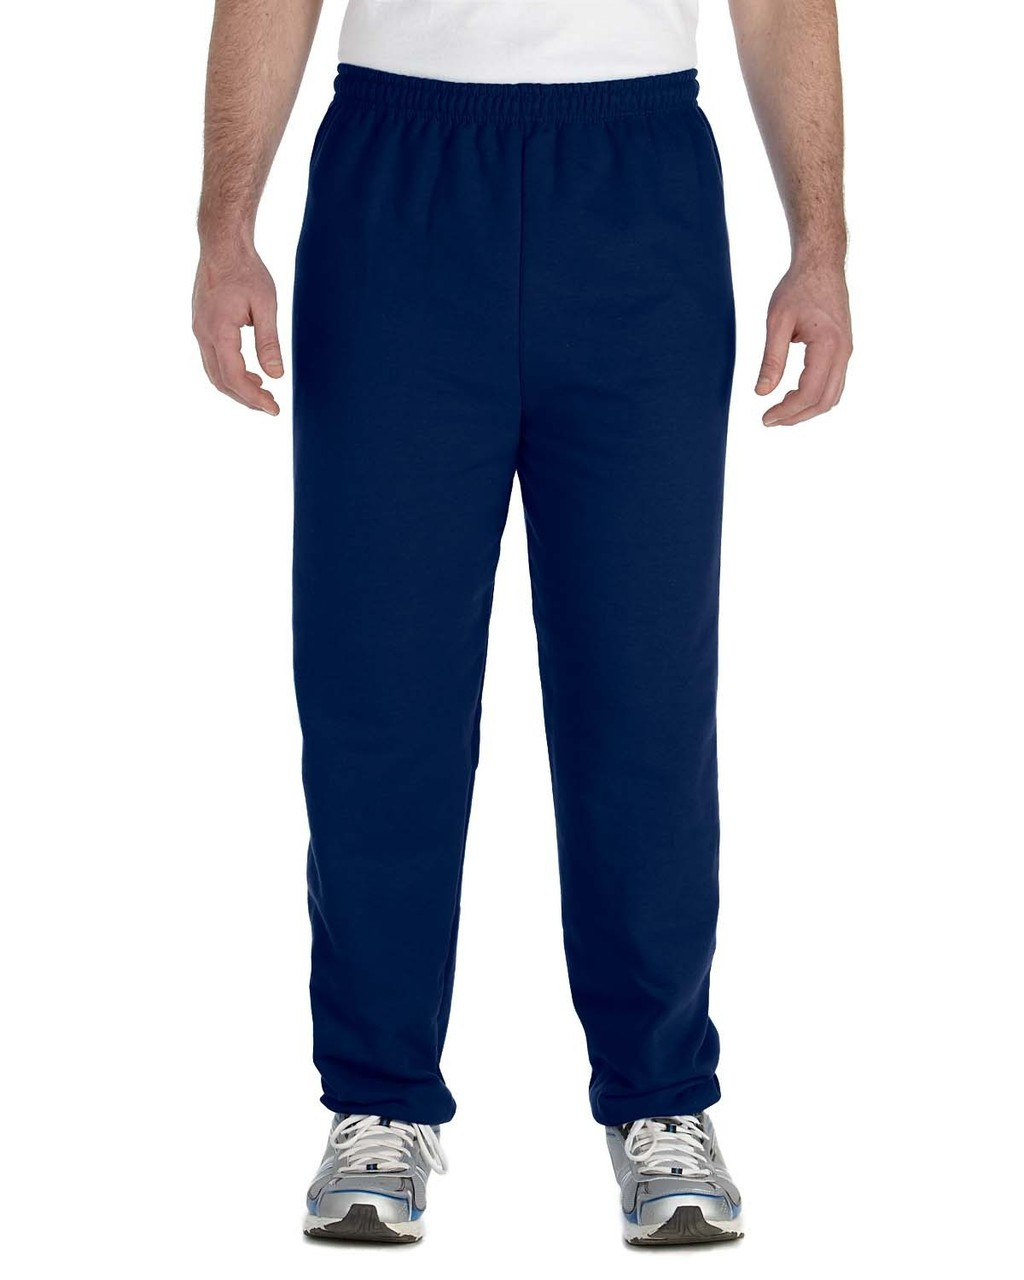 Navy - G182 Gildan Heavy Blend Sweatpants | Blankclothing.ca